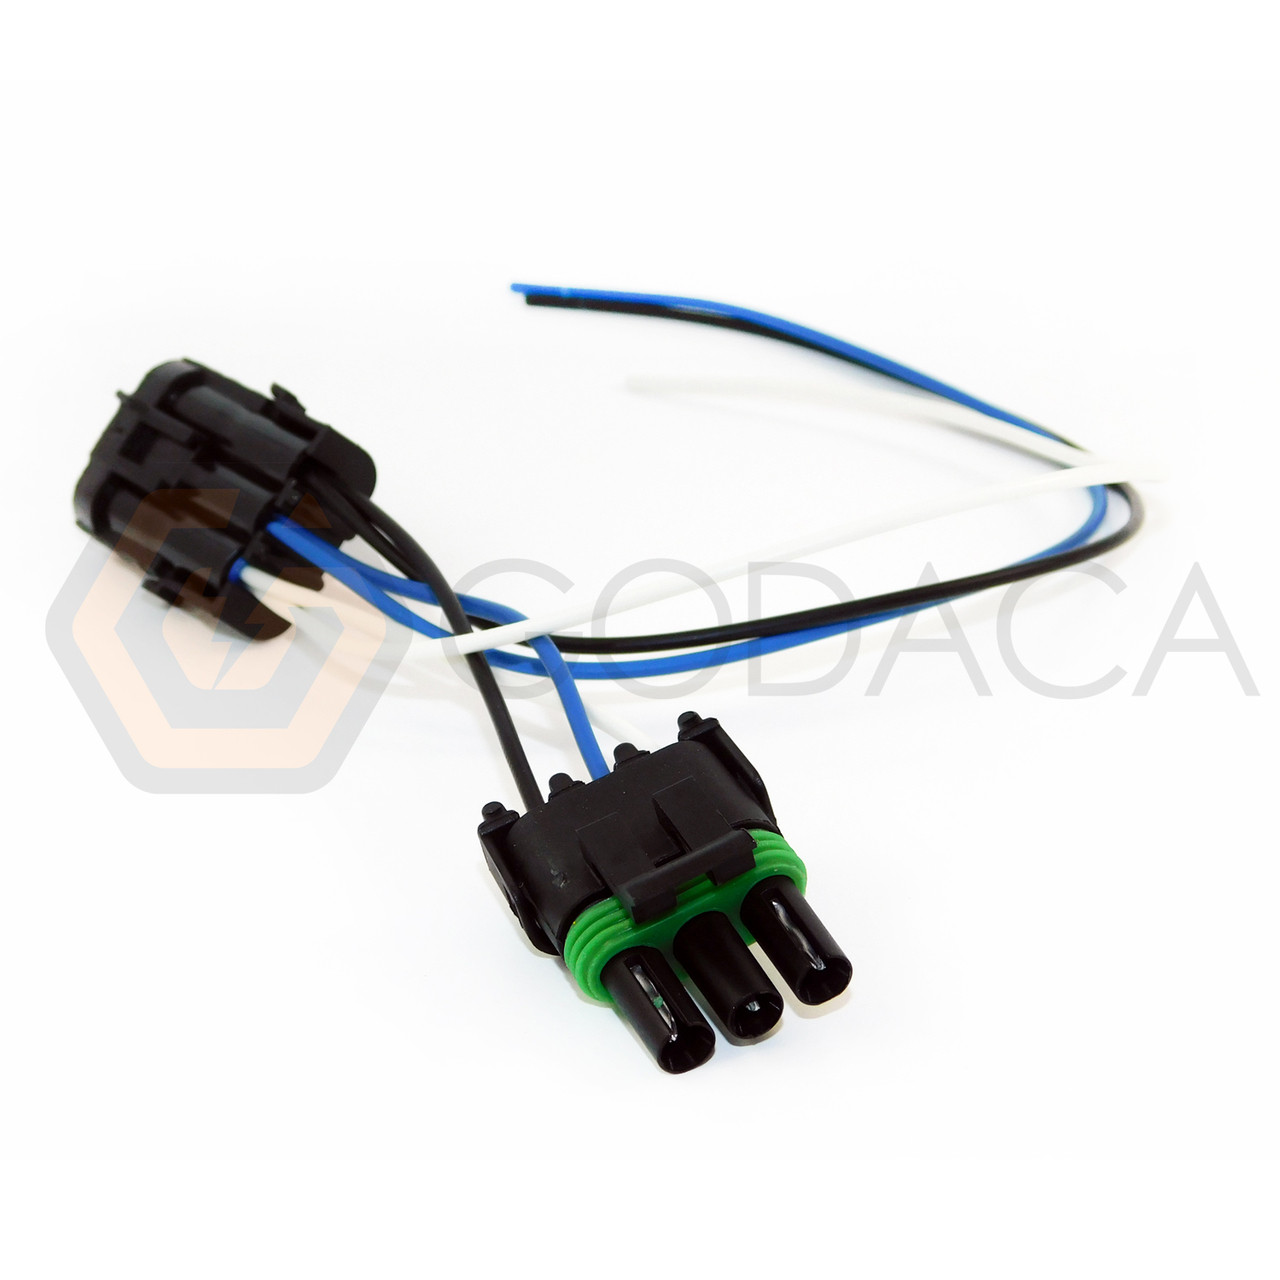 Gm Tps Harness Automotive Wiring Diagram 03 Buick Century 1x Connector Adapter Breakout For Jeep Godaca Rh Com 17111606